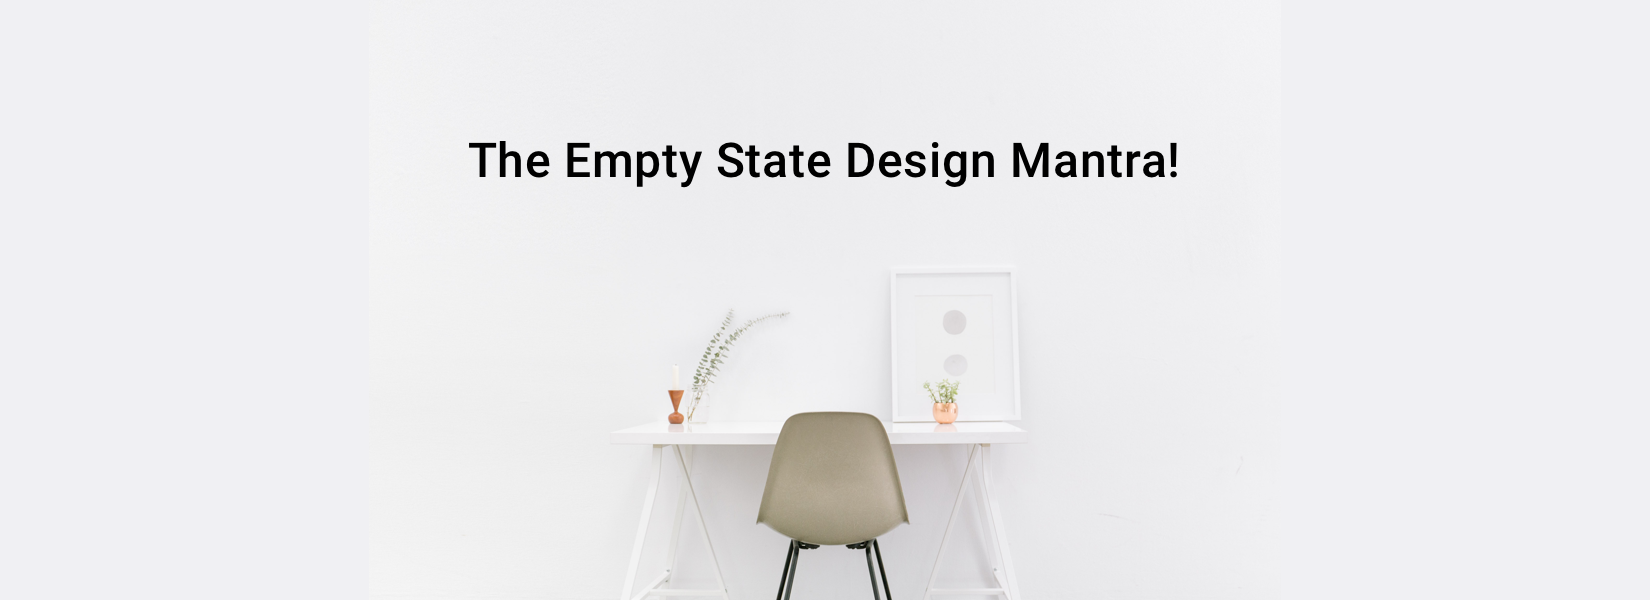 The empty state design mantra?